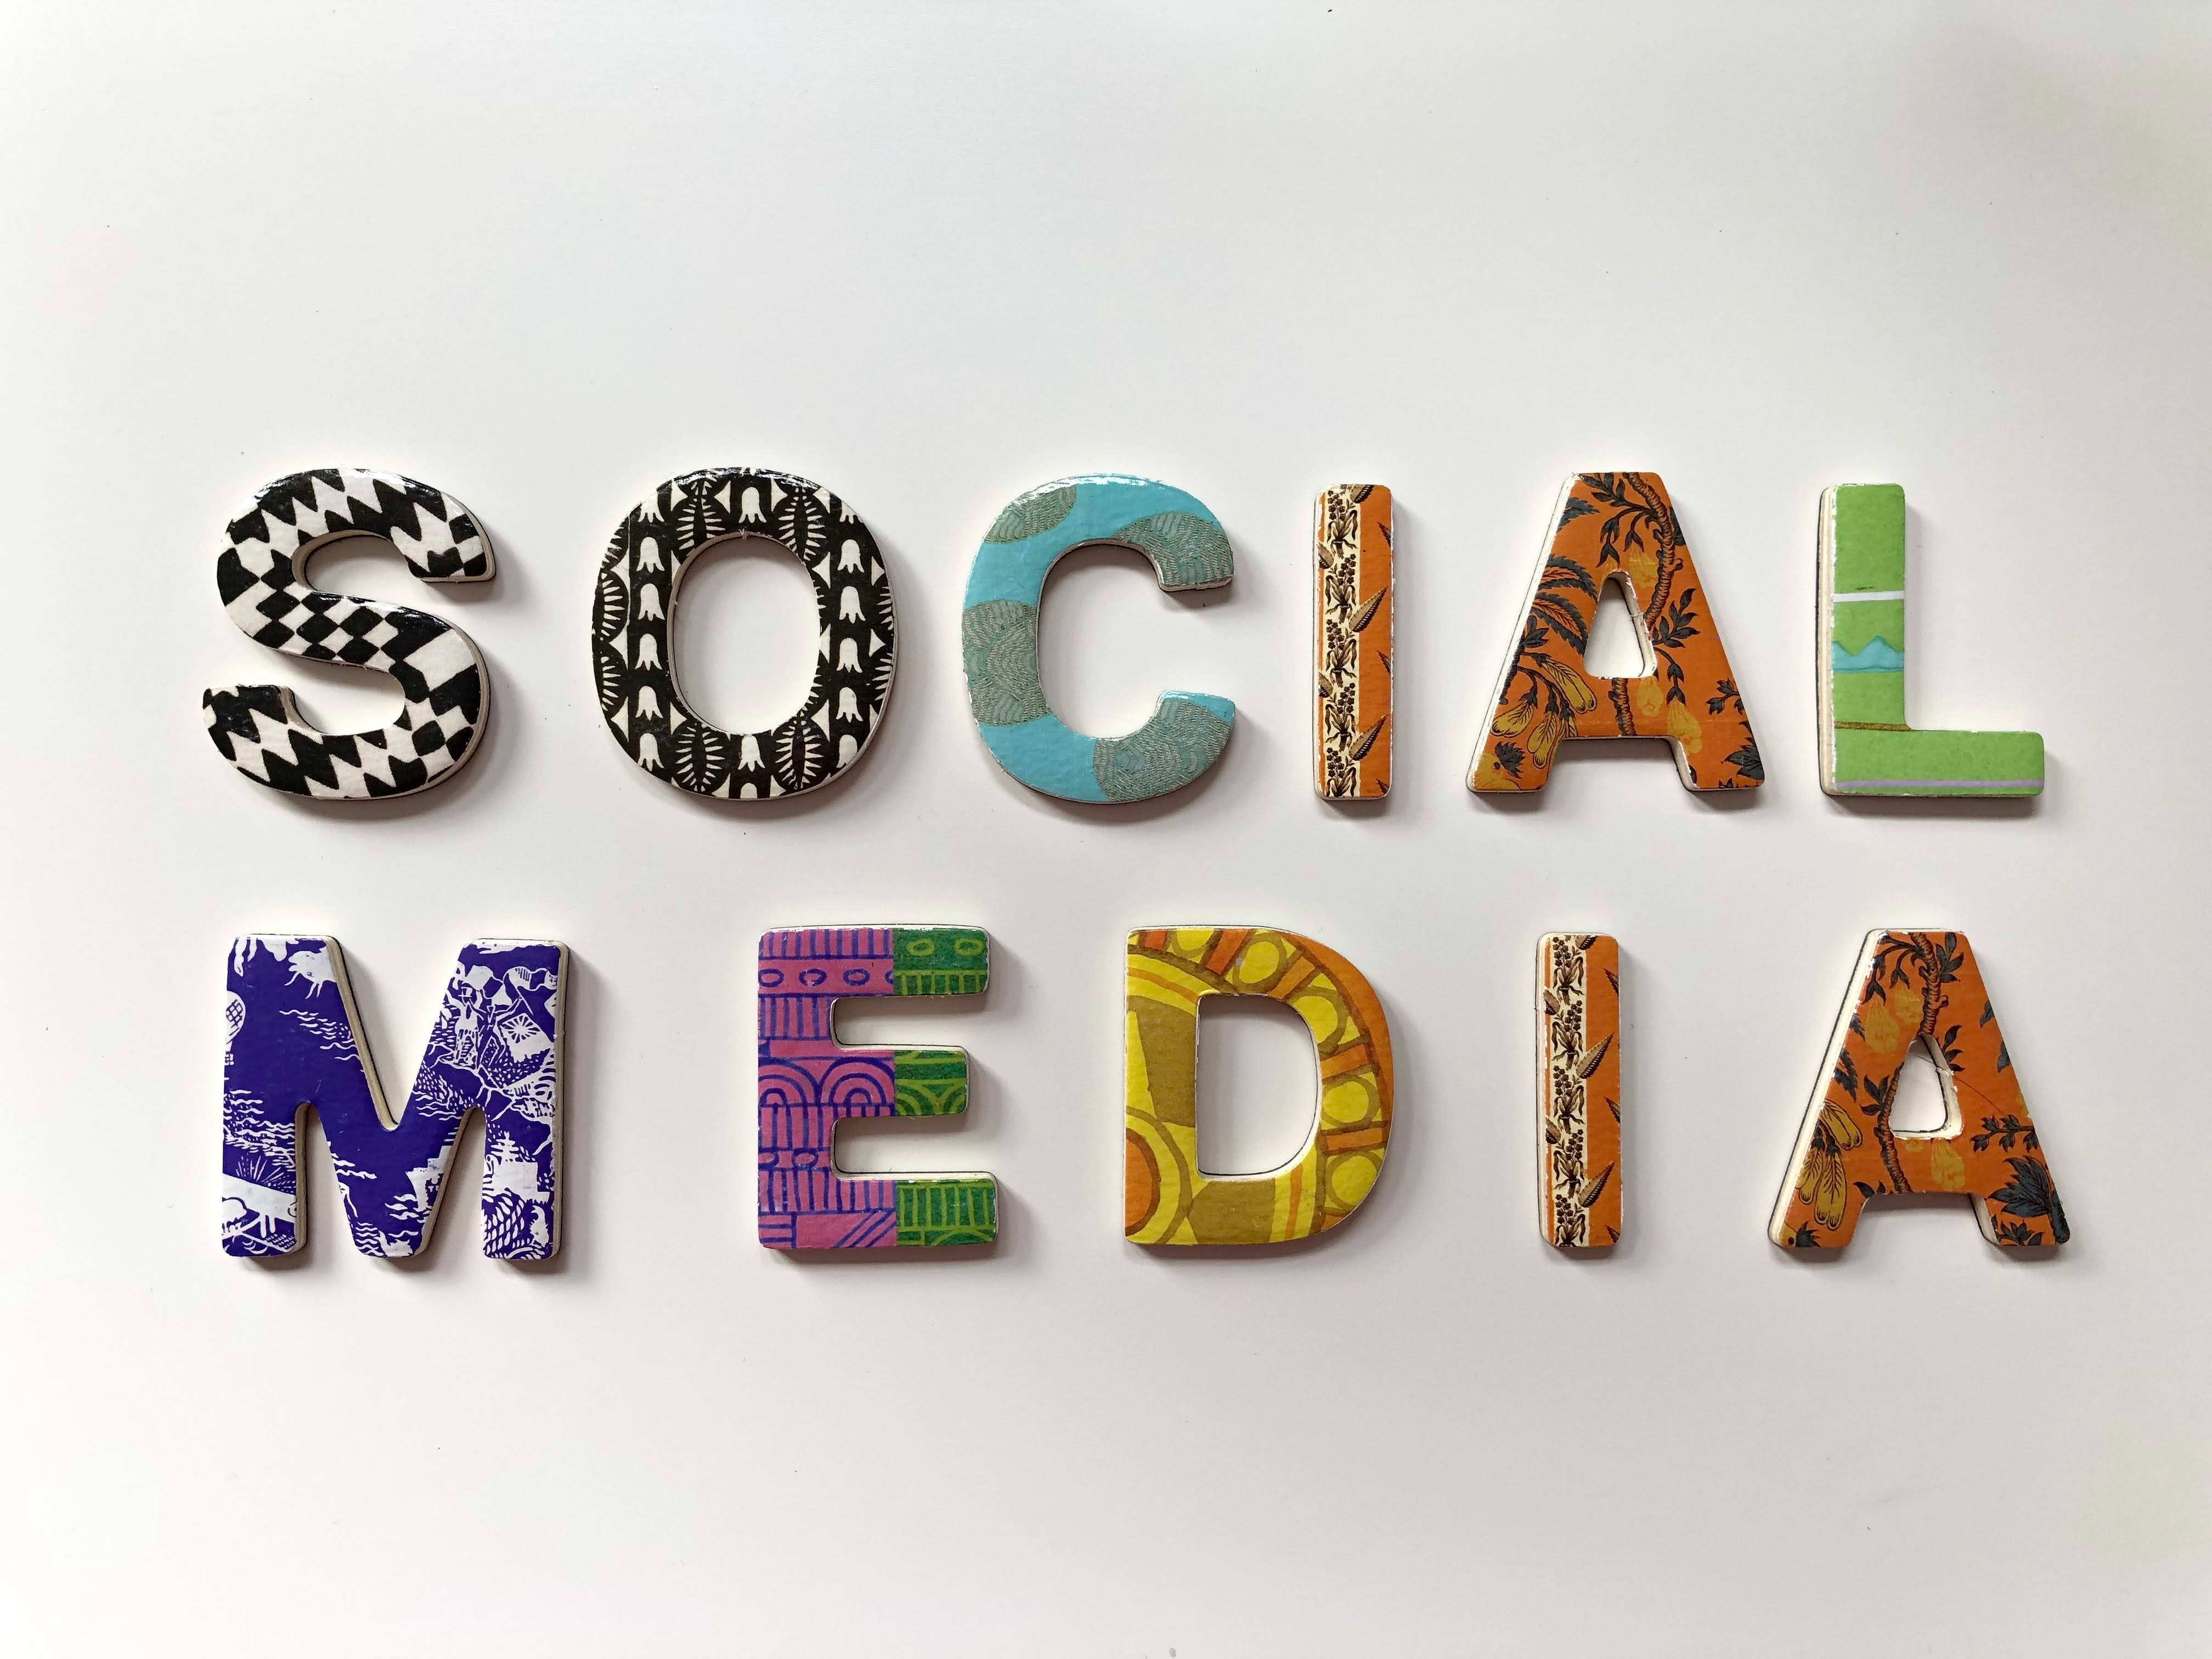 What Are the Best Social Media Platforms to Market Your Game On?